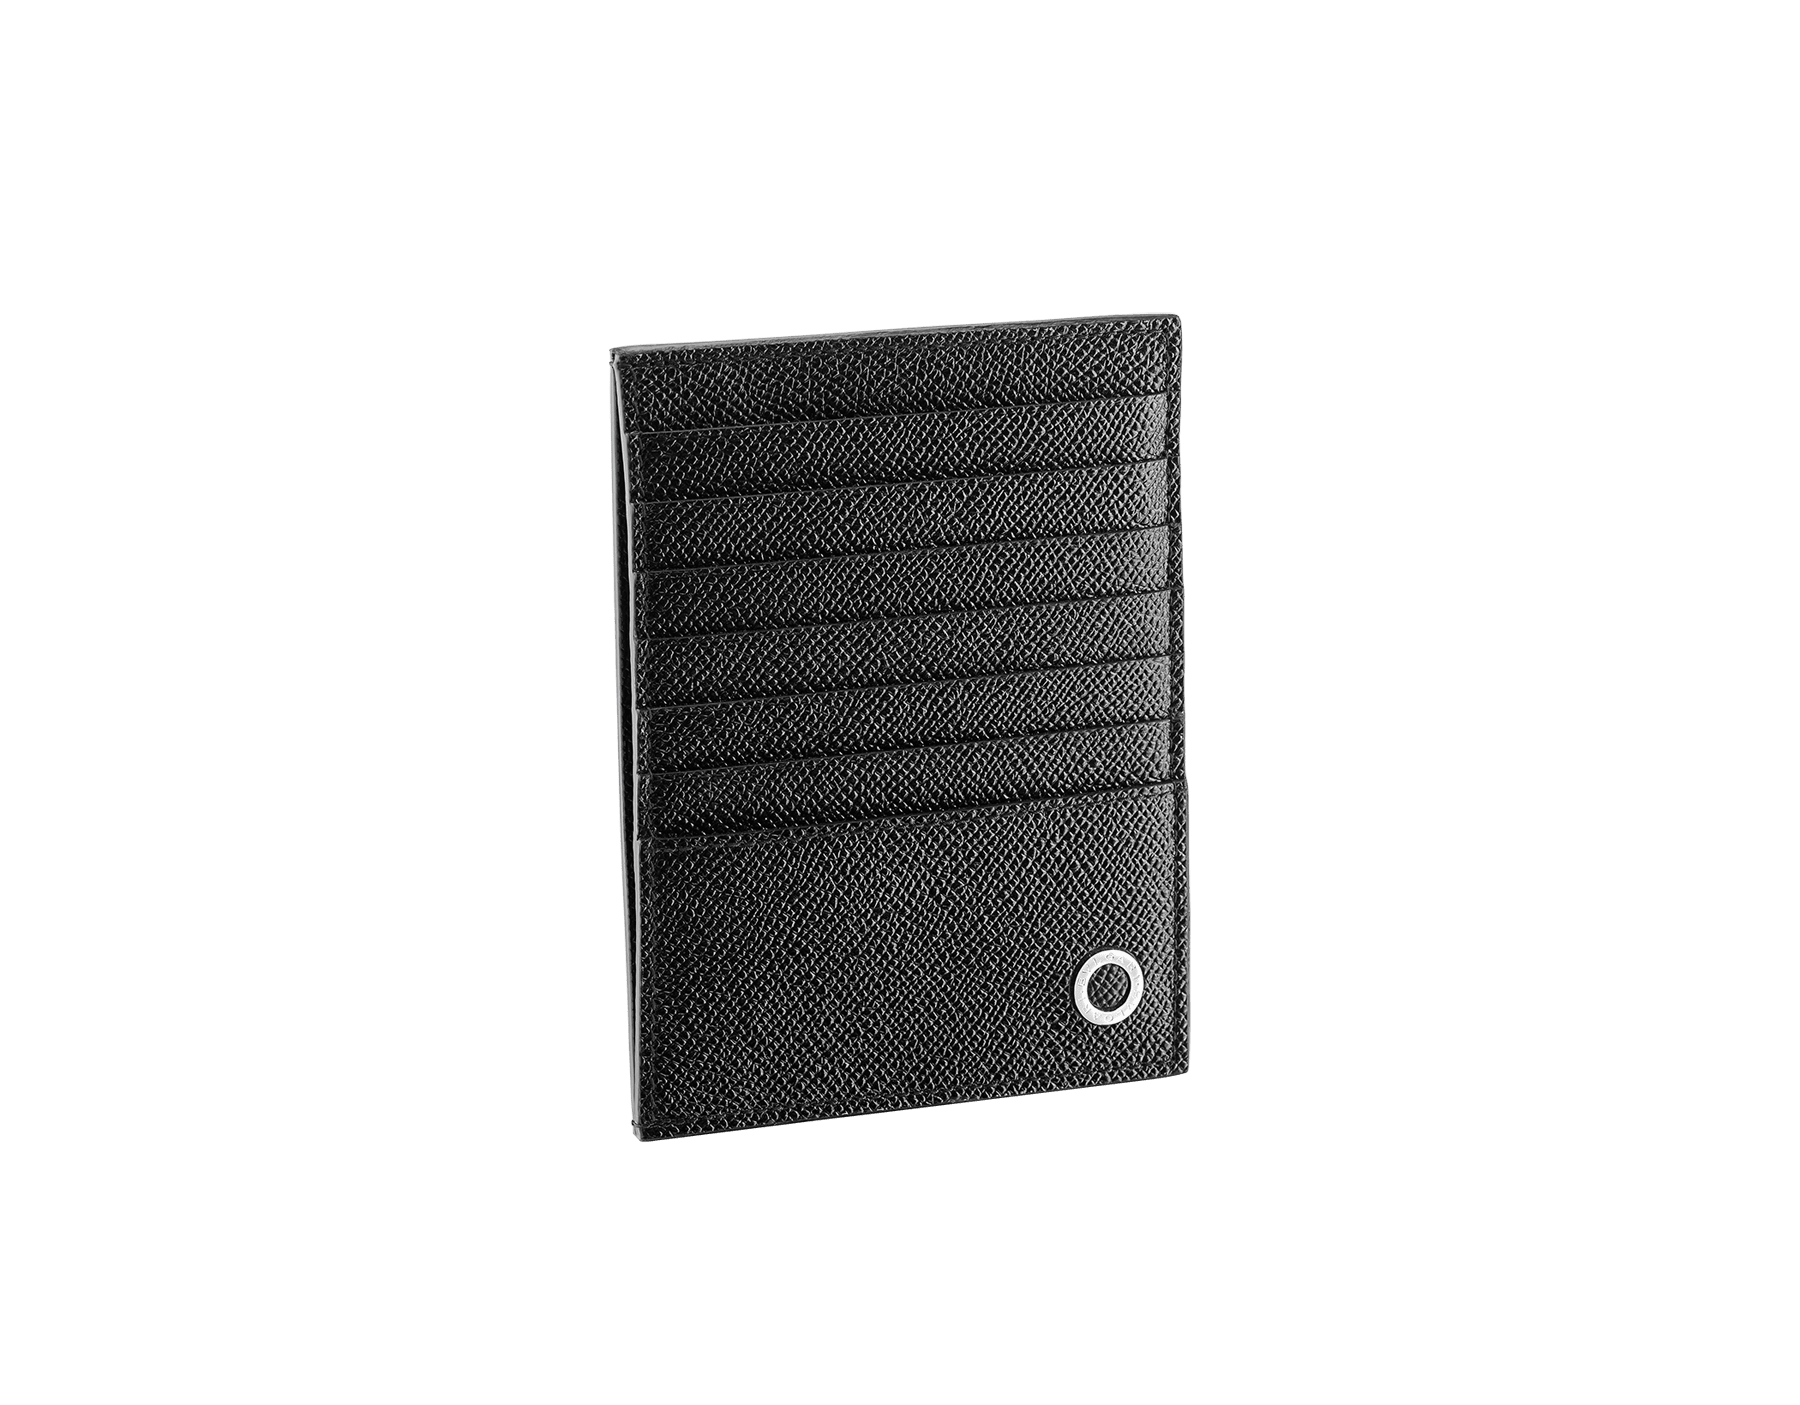 BVLGARI BVLGARI credit card and coins holder in black grain calf leather. Iconic logo décor in palladium plated brass. 289391 image 1